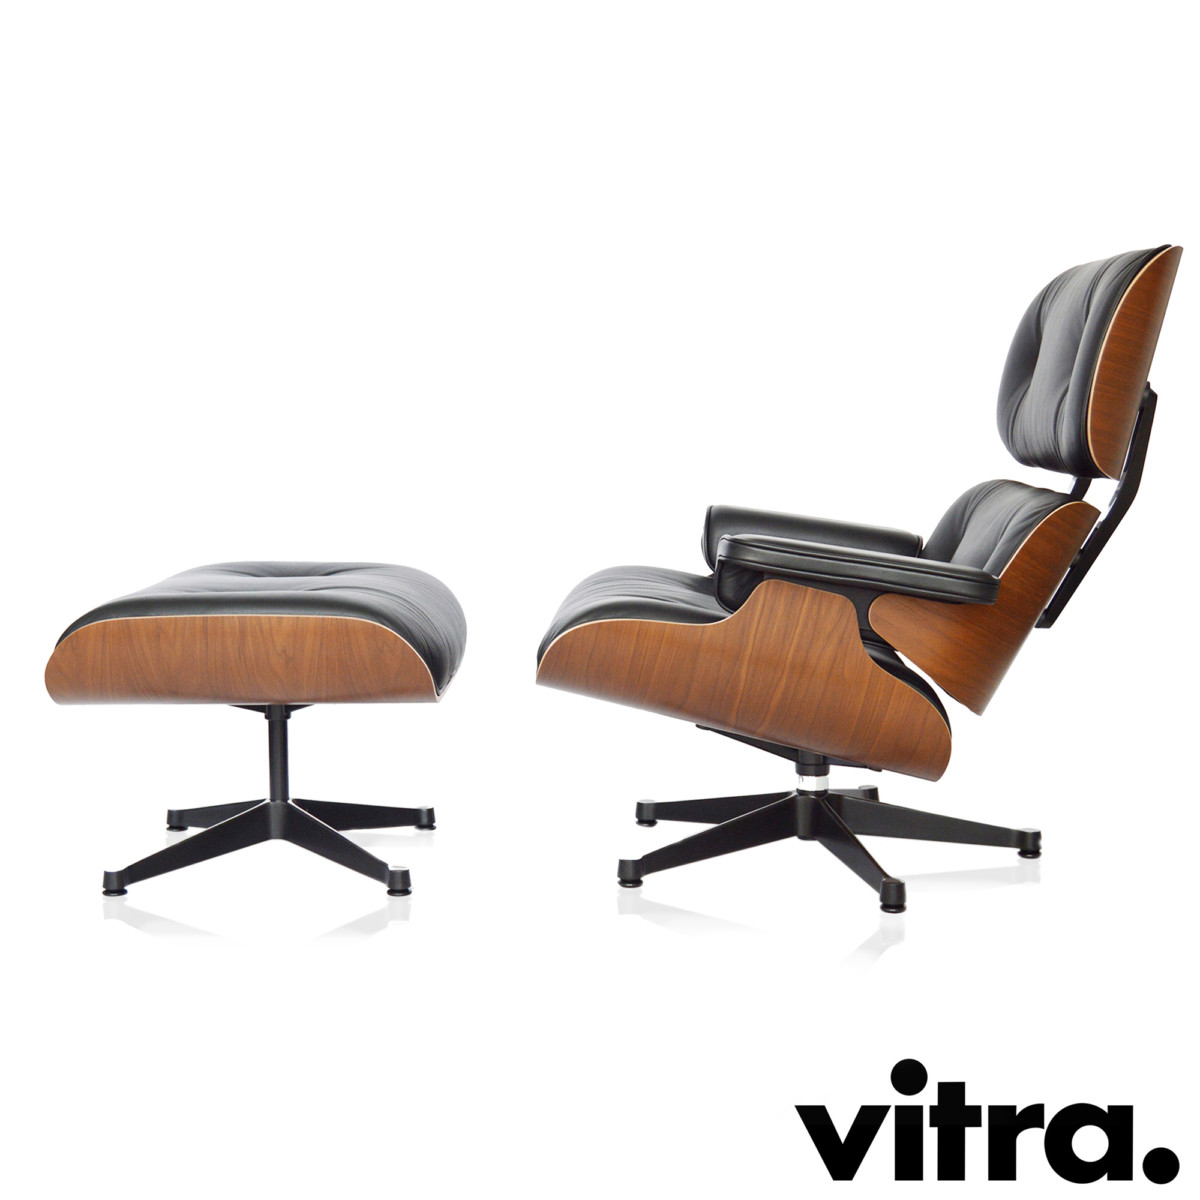 vitra lounge chair rocking chairs at walmart eames in the design assortment of midmodern de buy xl ottoman walnut